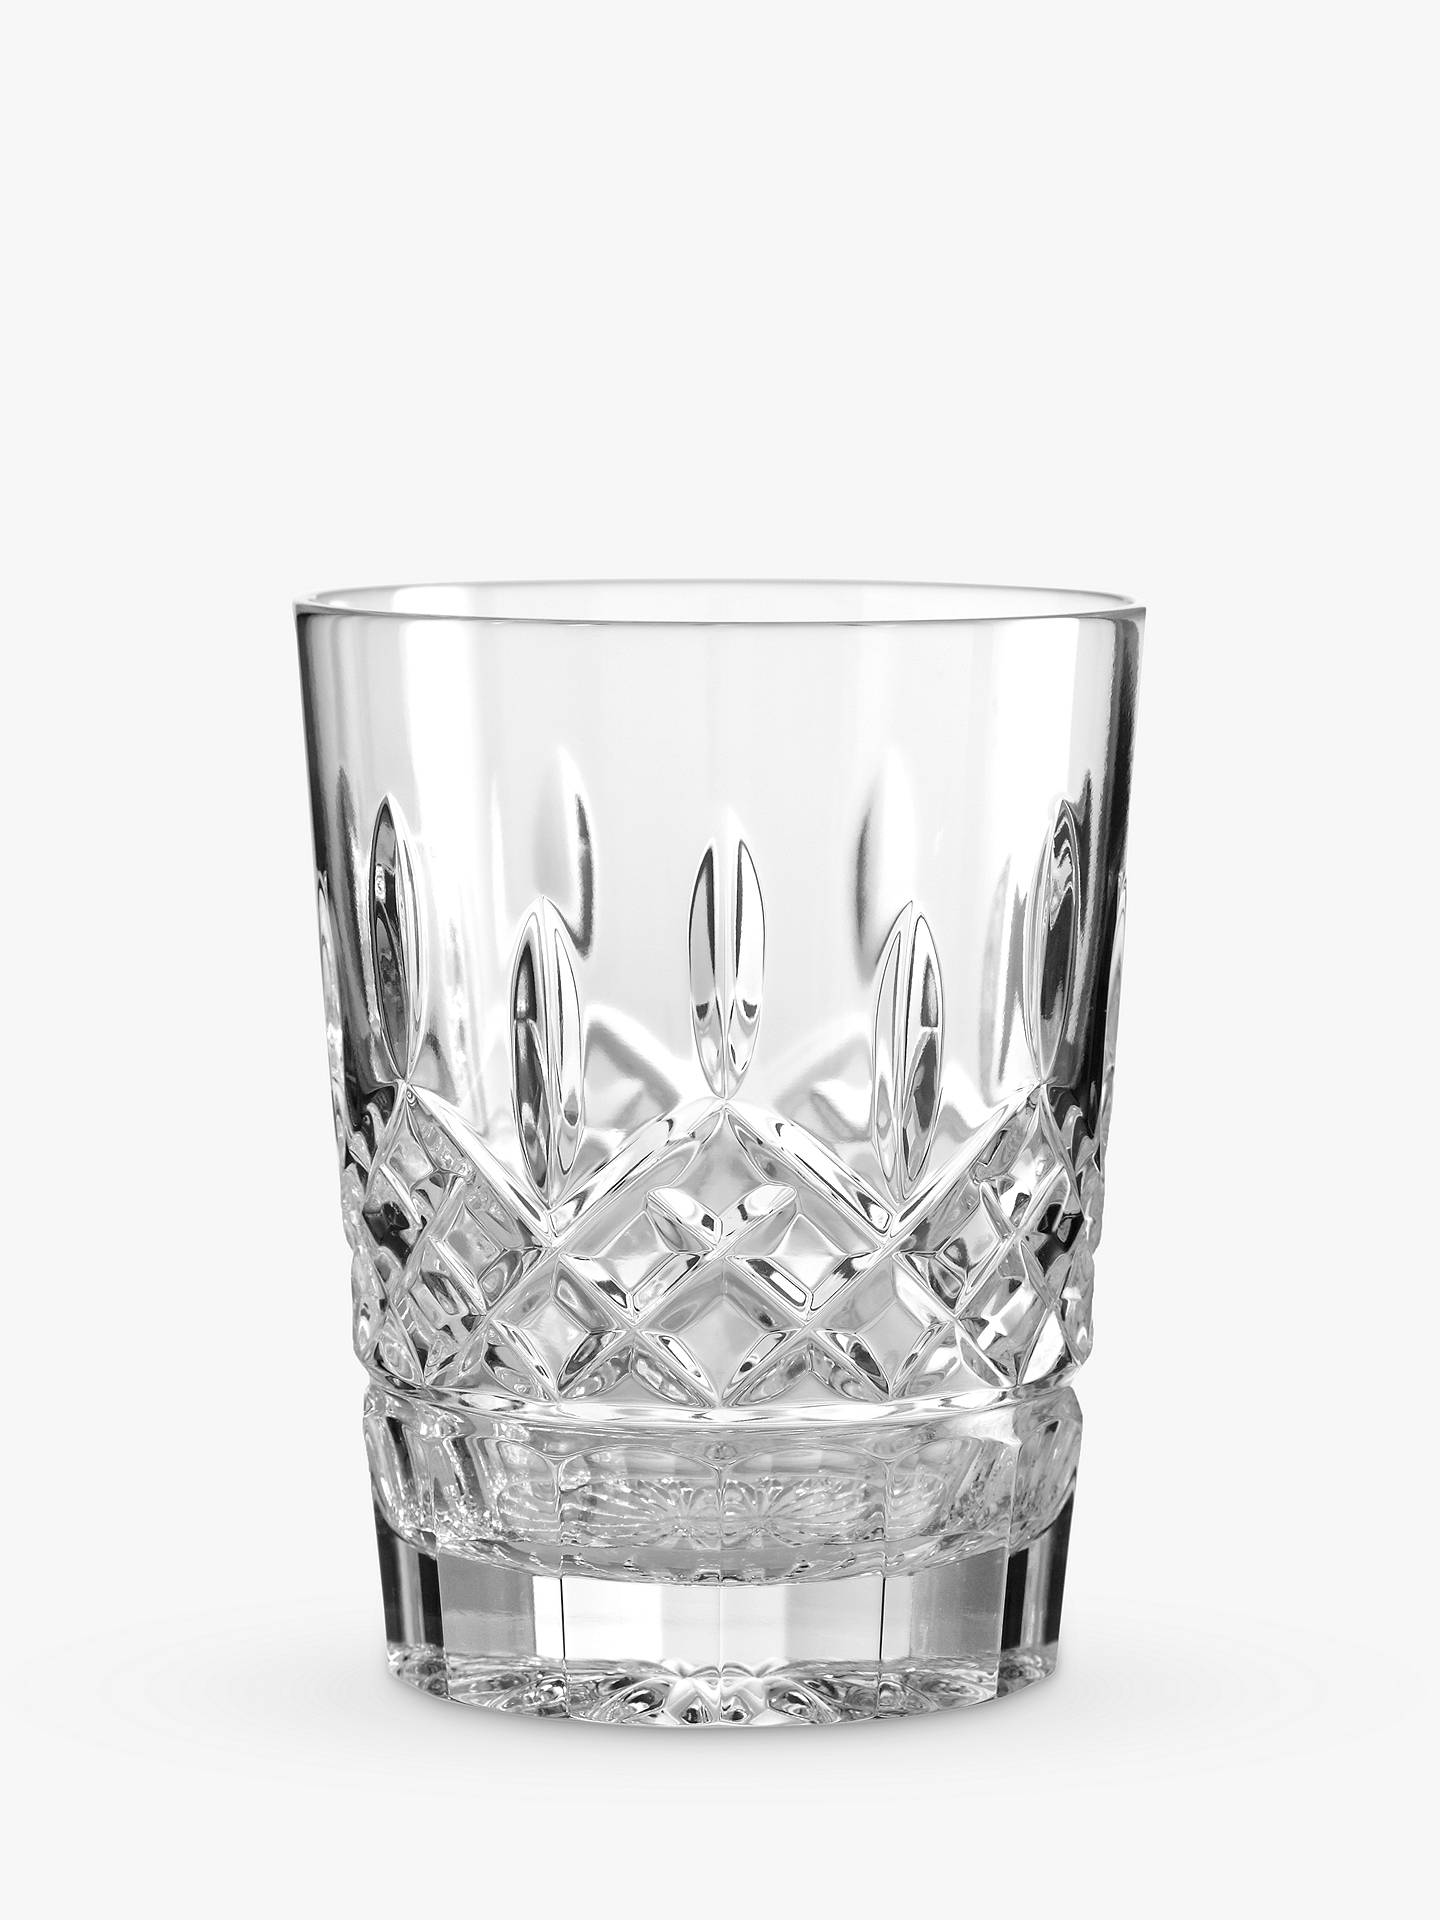 8bfdcb89170 Buy Waterford Crystal Lismore Double Old Fashioned Cut Lead Crystal Tumbler